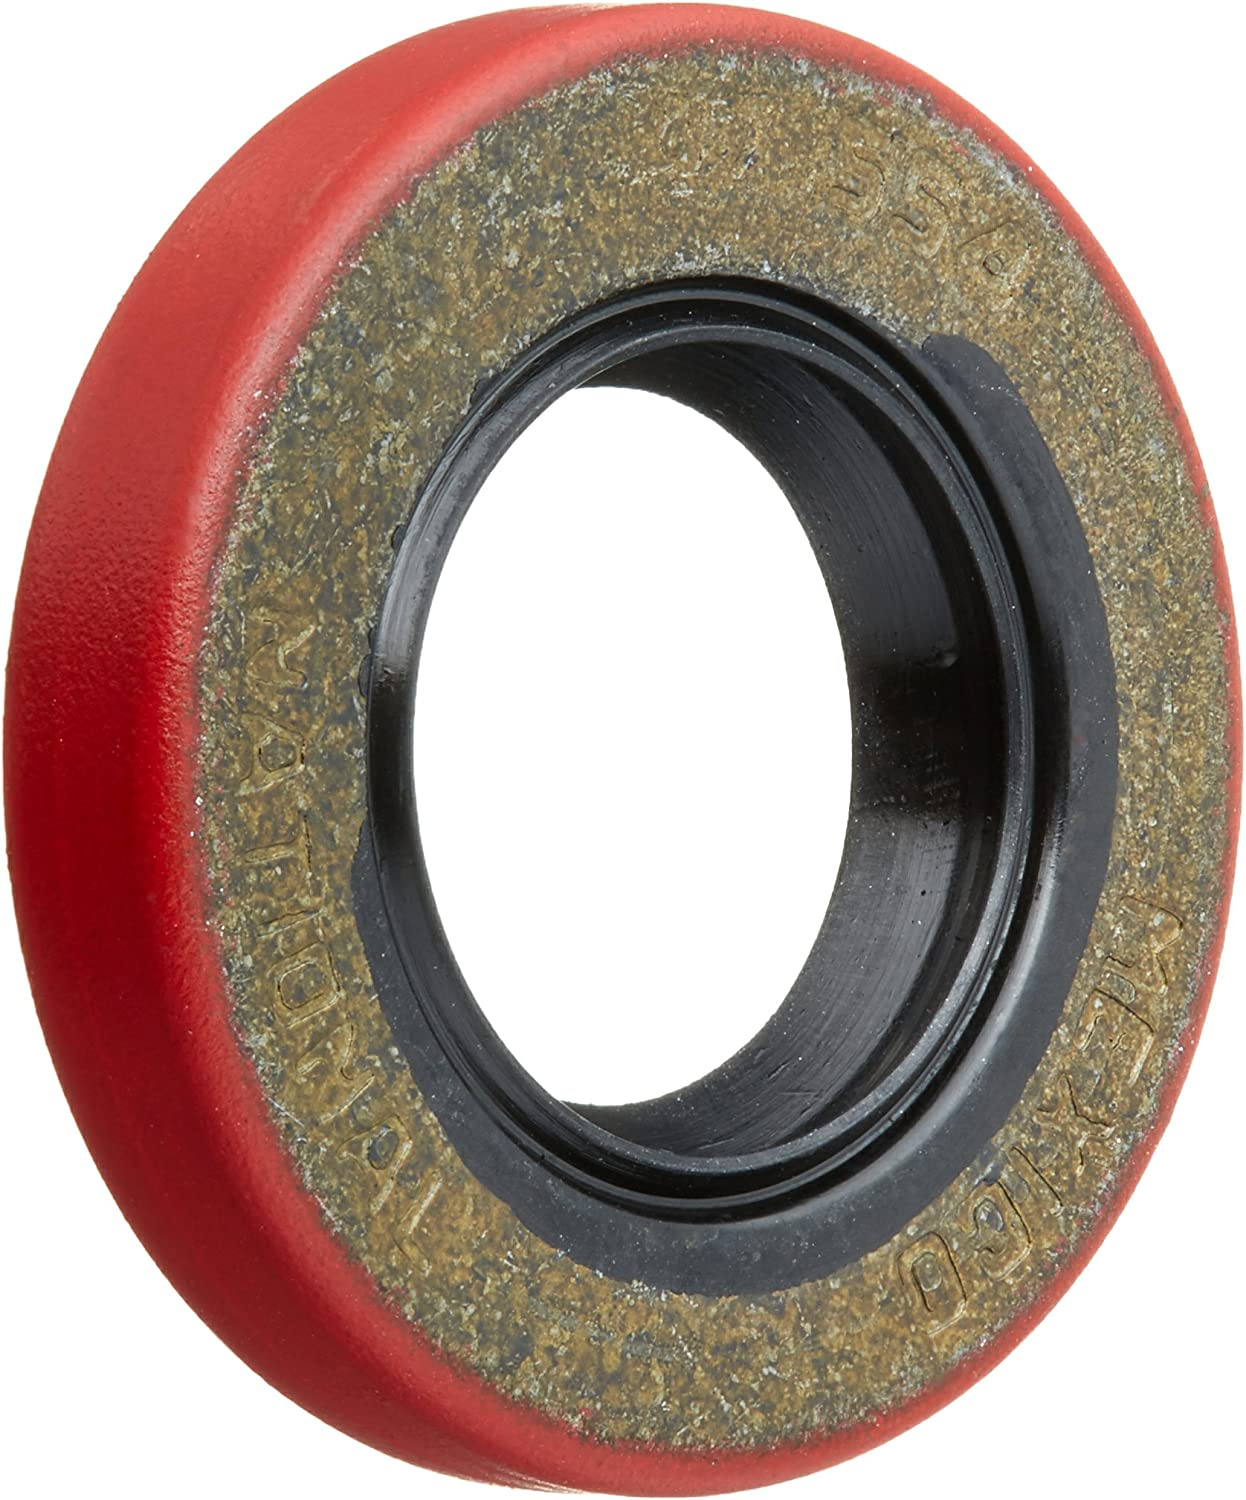 National 471554 Factory outlet Oil Surprise price Seal